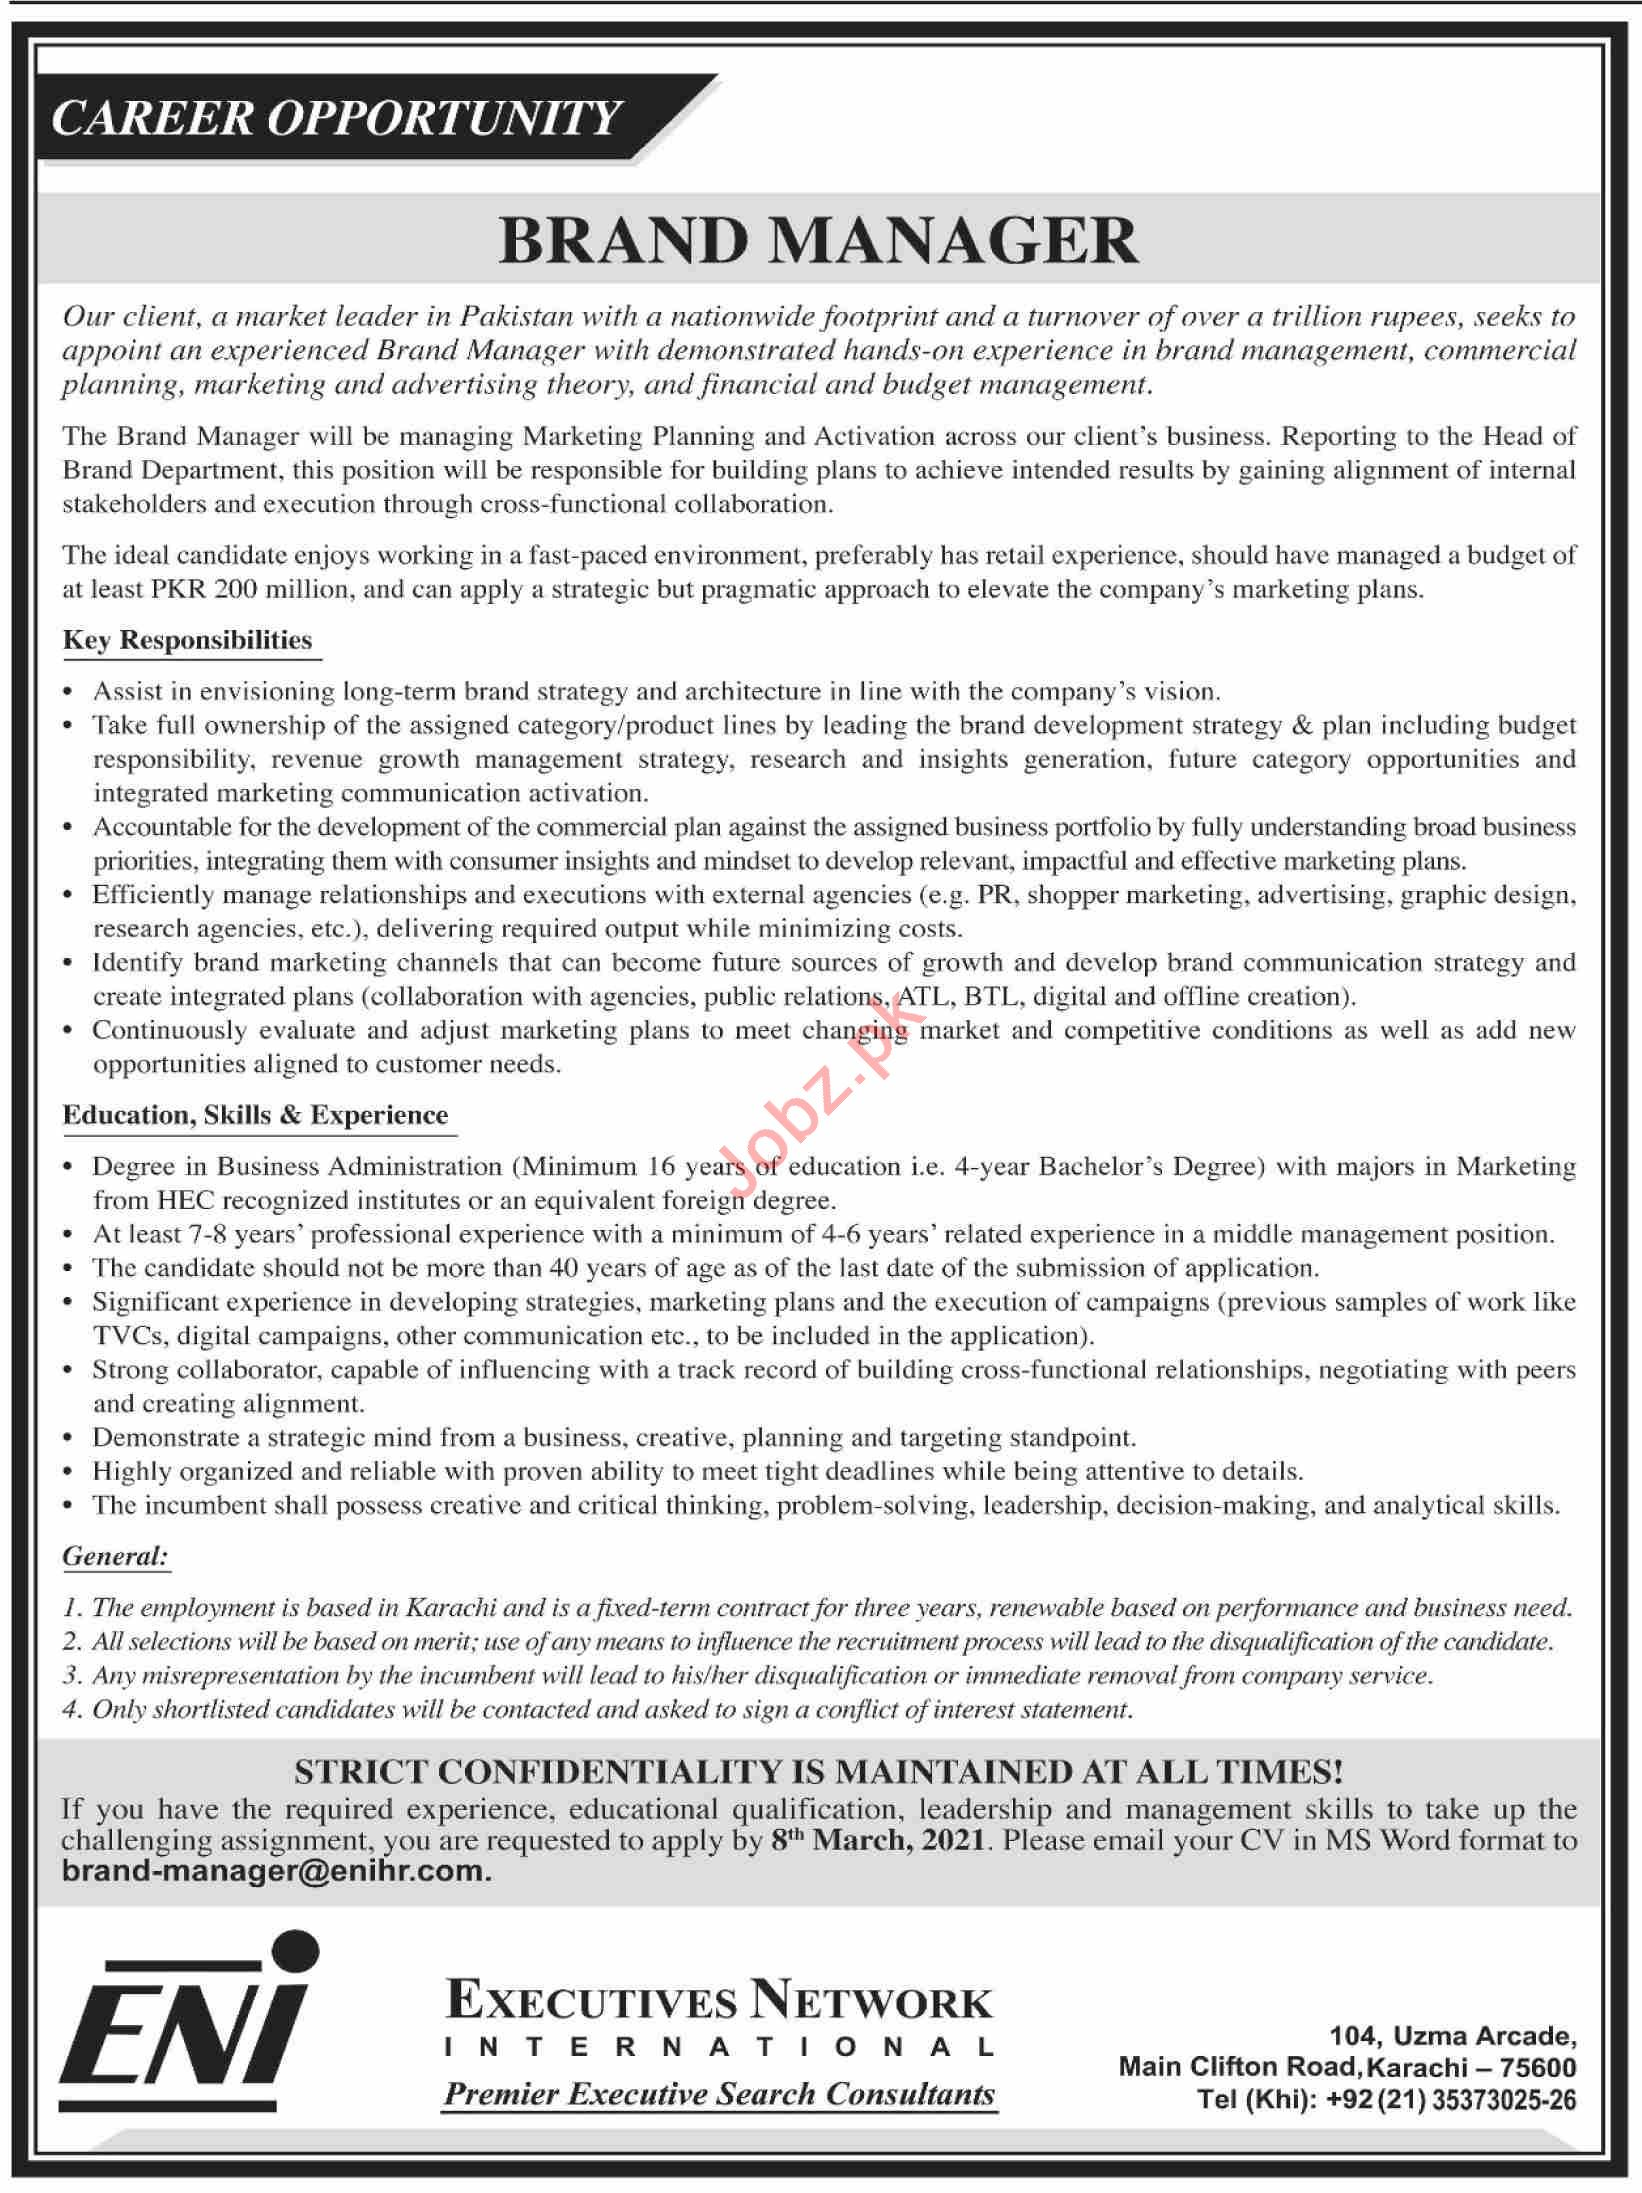 Brand Manager Jobs 2021 in Executives Network International